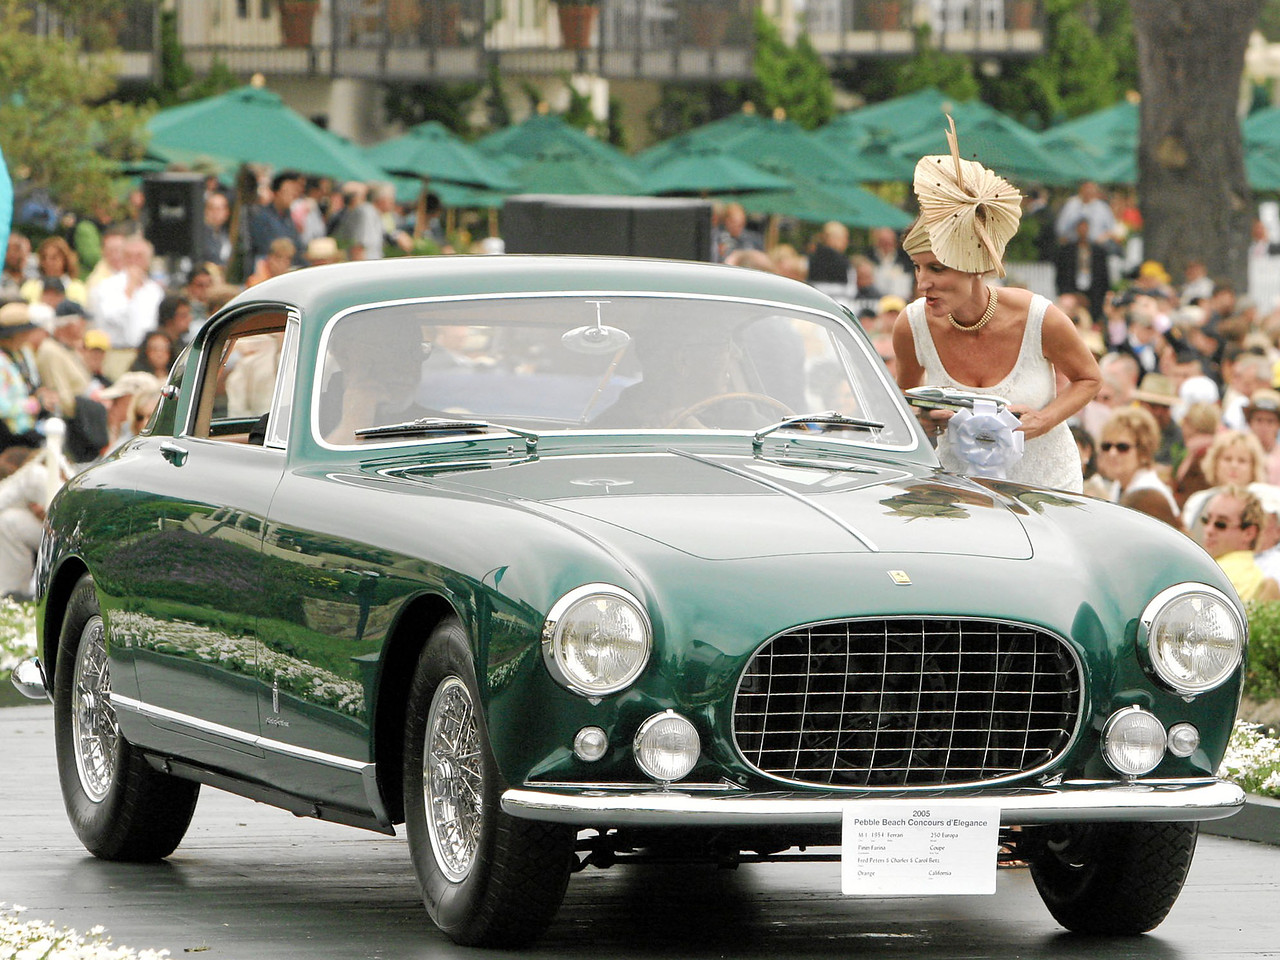 1954 Ferrari 250 Europa Pinin Farina Coupe owned by Fred Peters & Charles and Carol Betz from Orange 3rd Class M-1 (Ferrari Grand Touring)